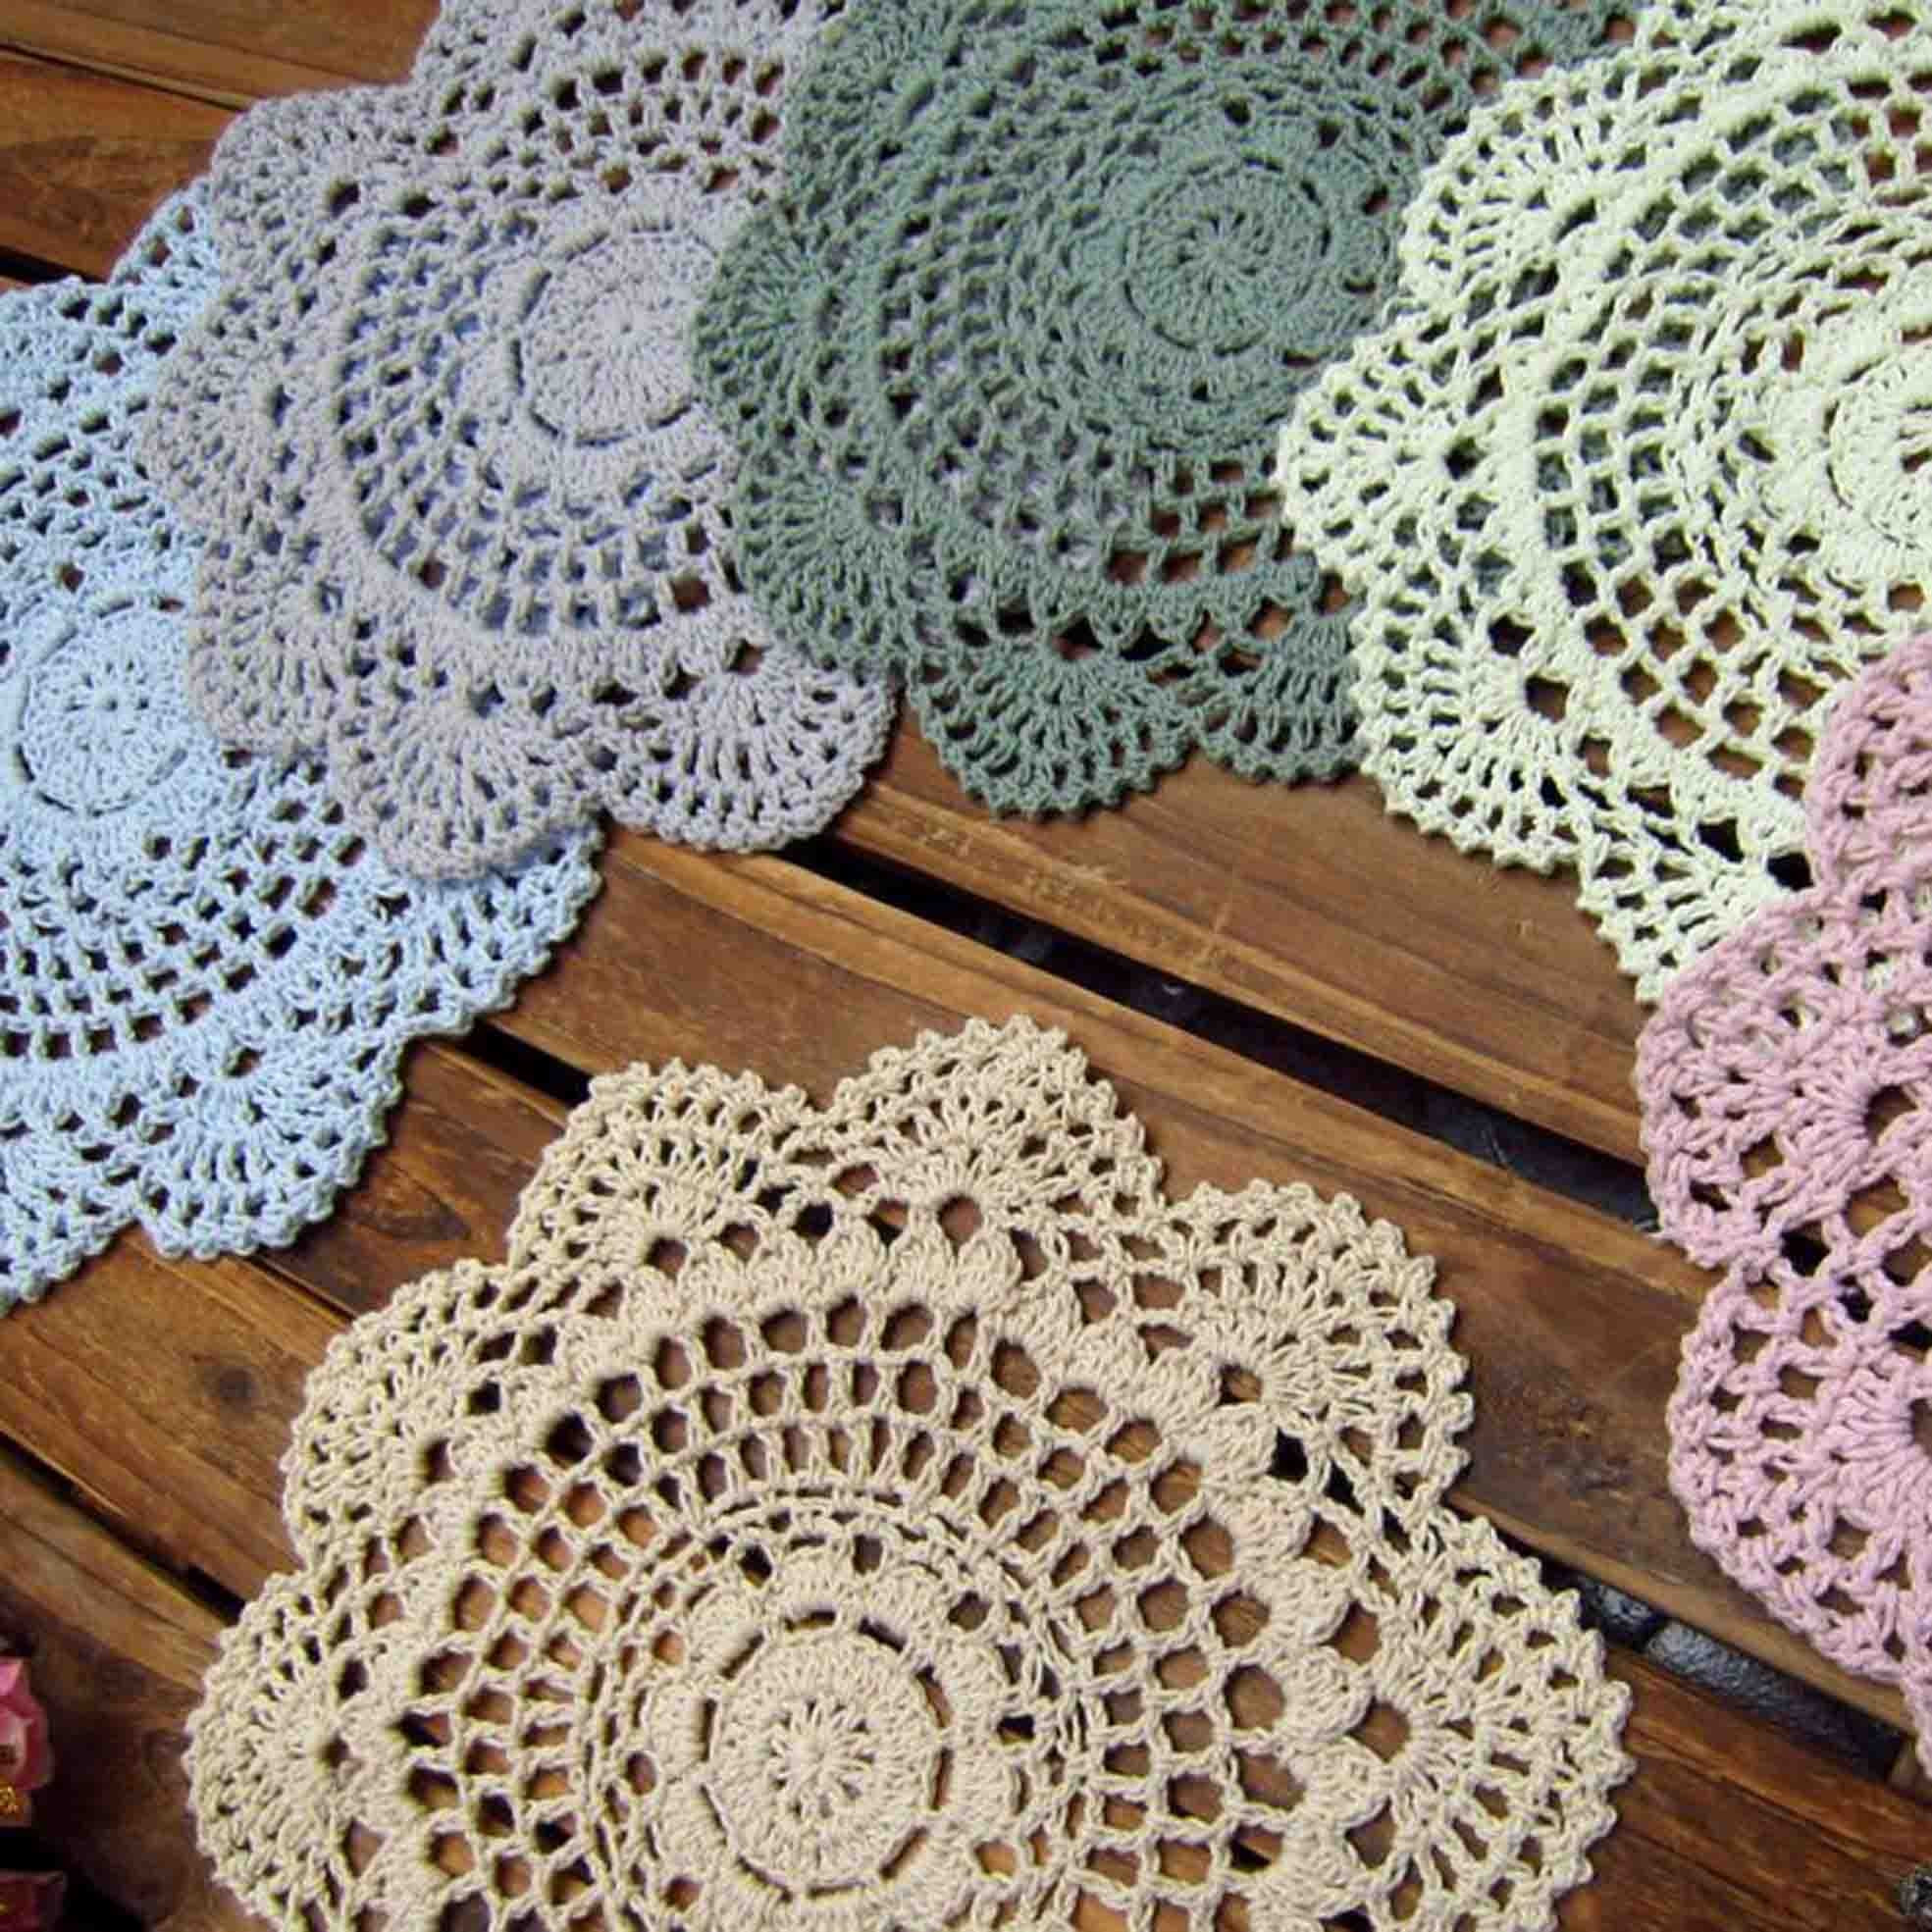 Crochet Name Doily Awesome Crochet Doily Of Lovely 45 Images Crochet Name Doily